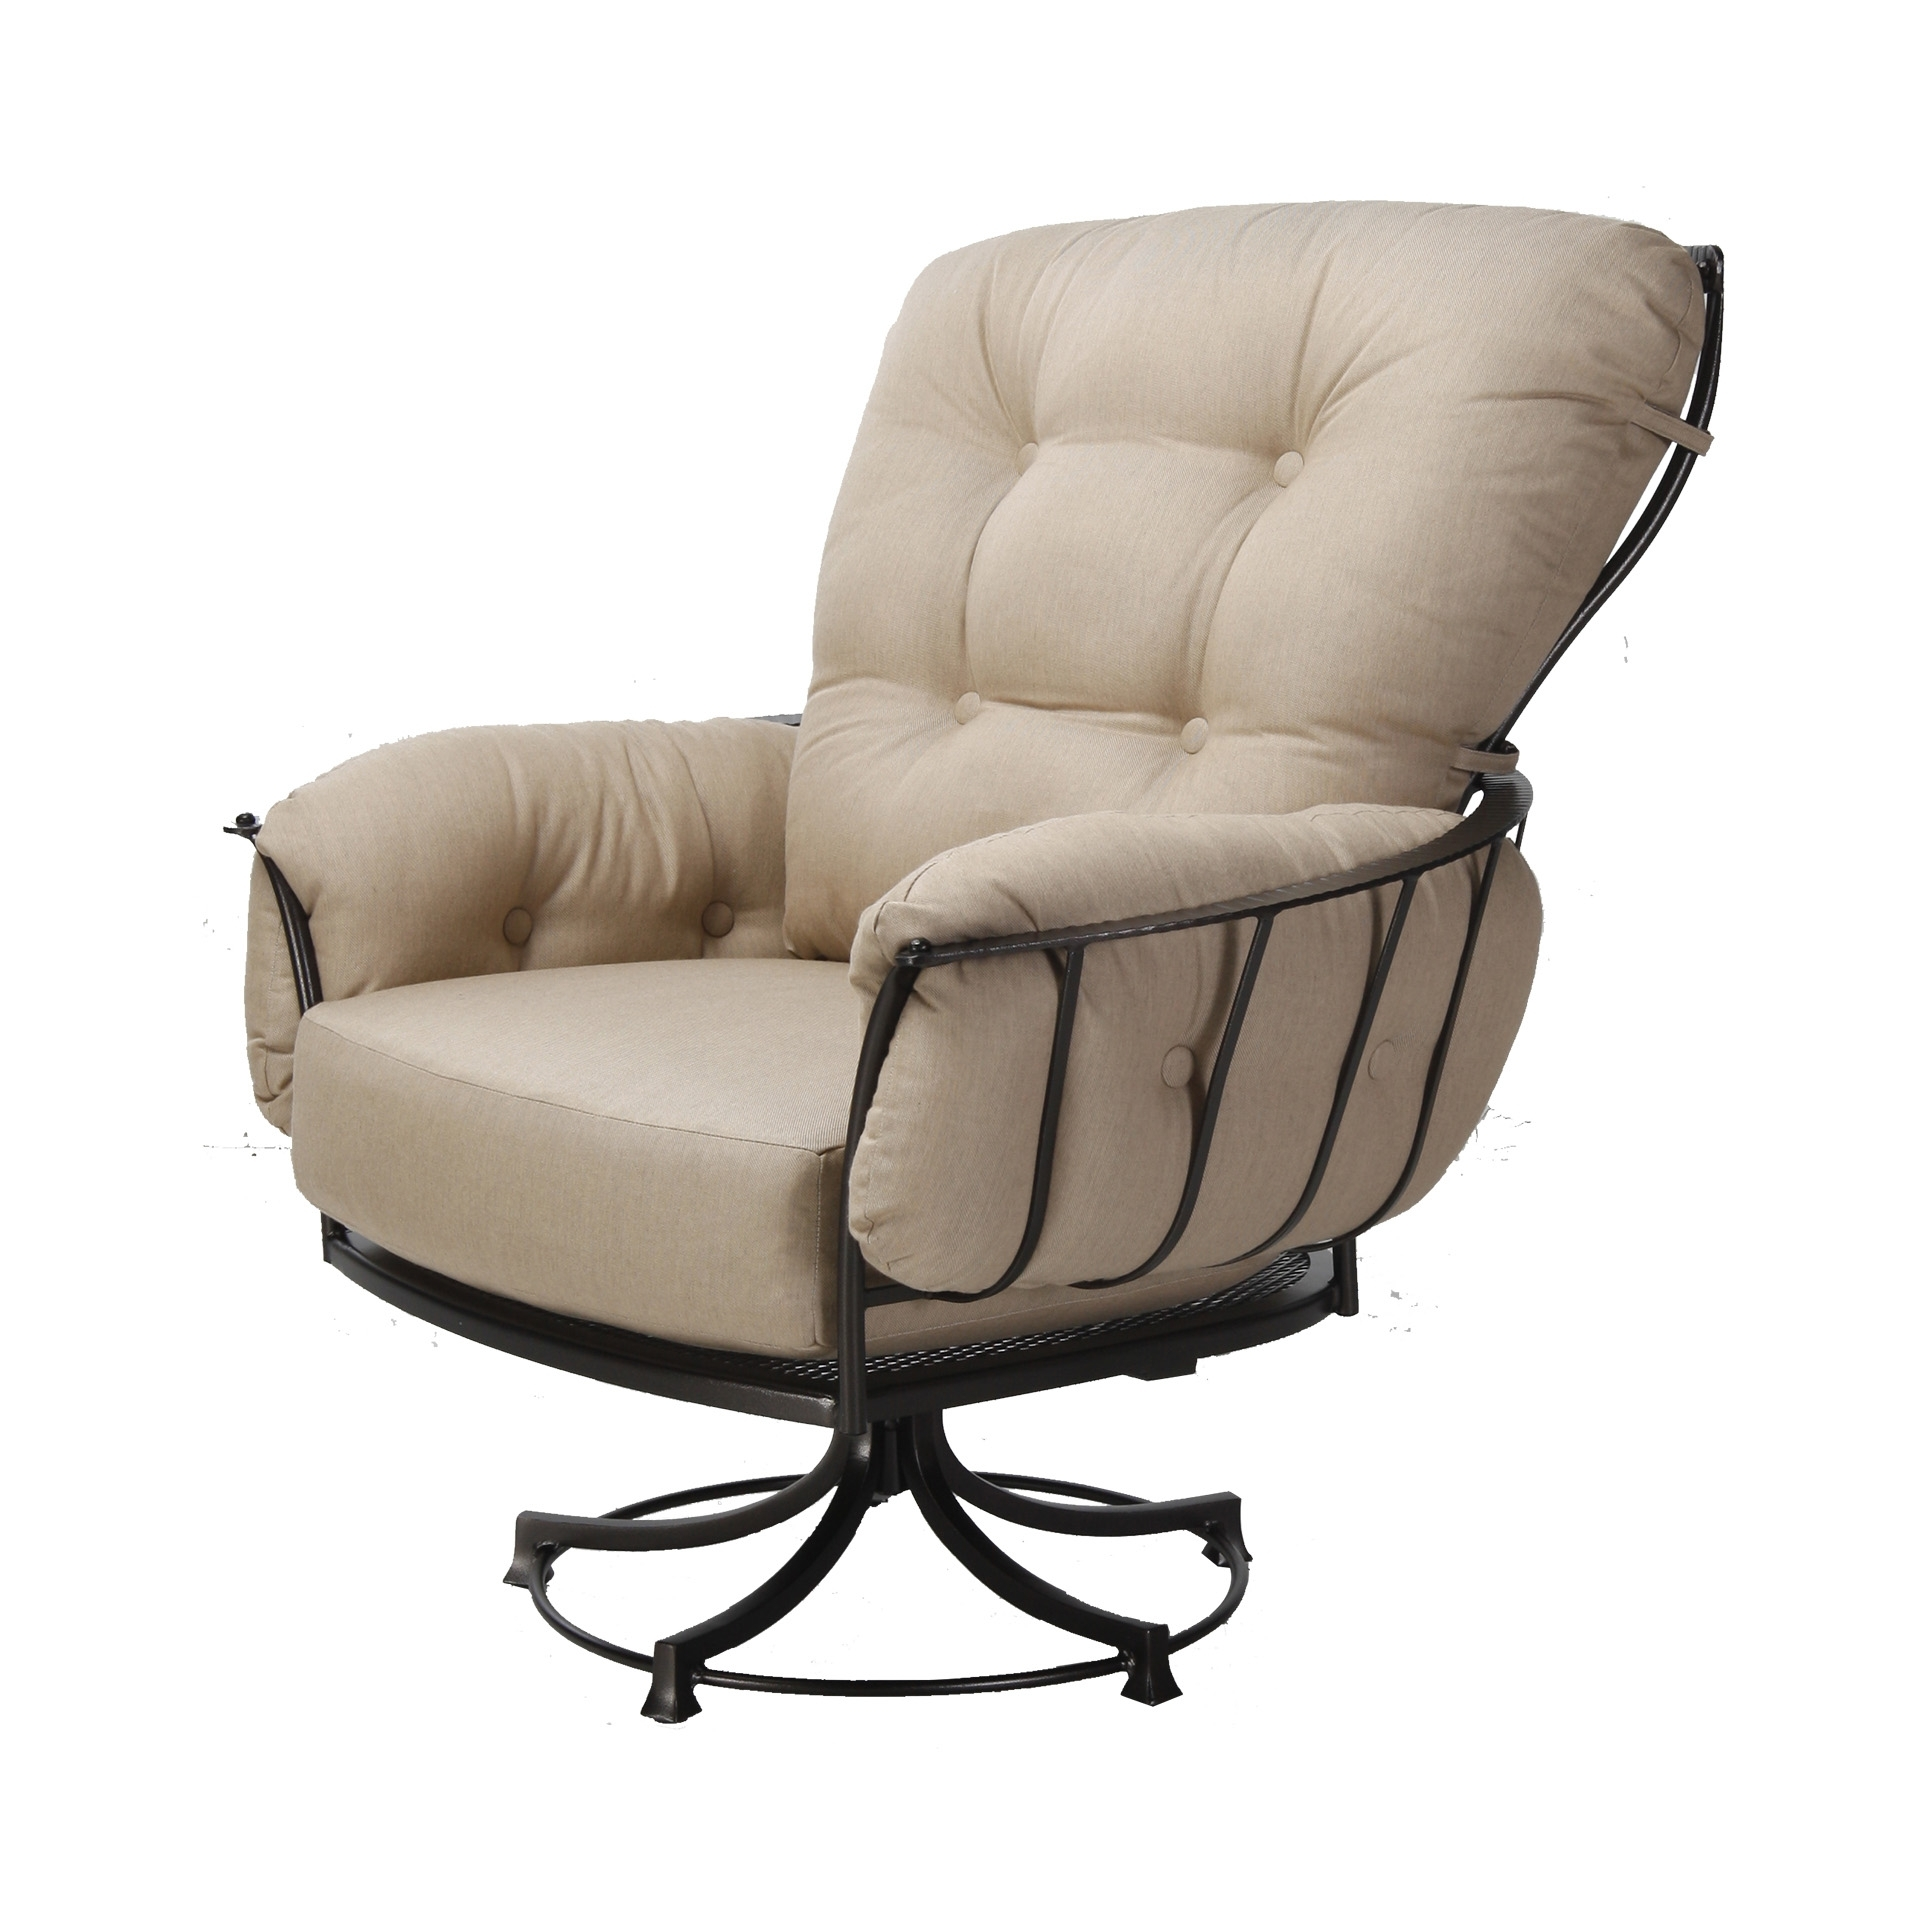 Patio Rocking Swivel Chairs Pertaining To 2017 Swivel Rocker Lounge Chair (View 6 of 15)